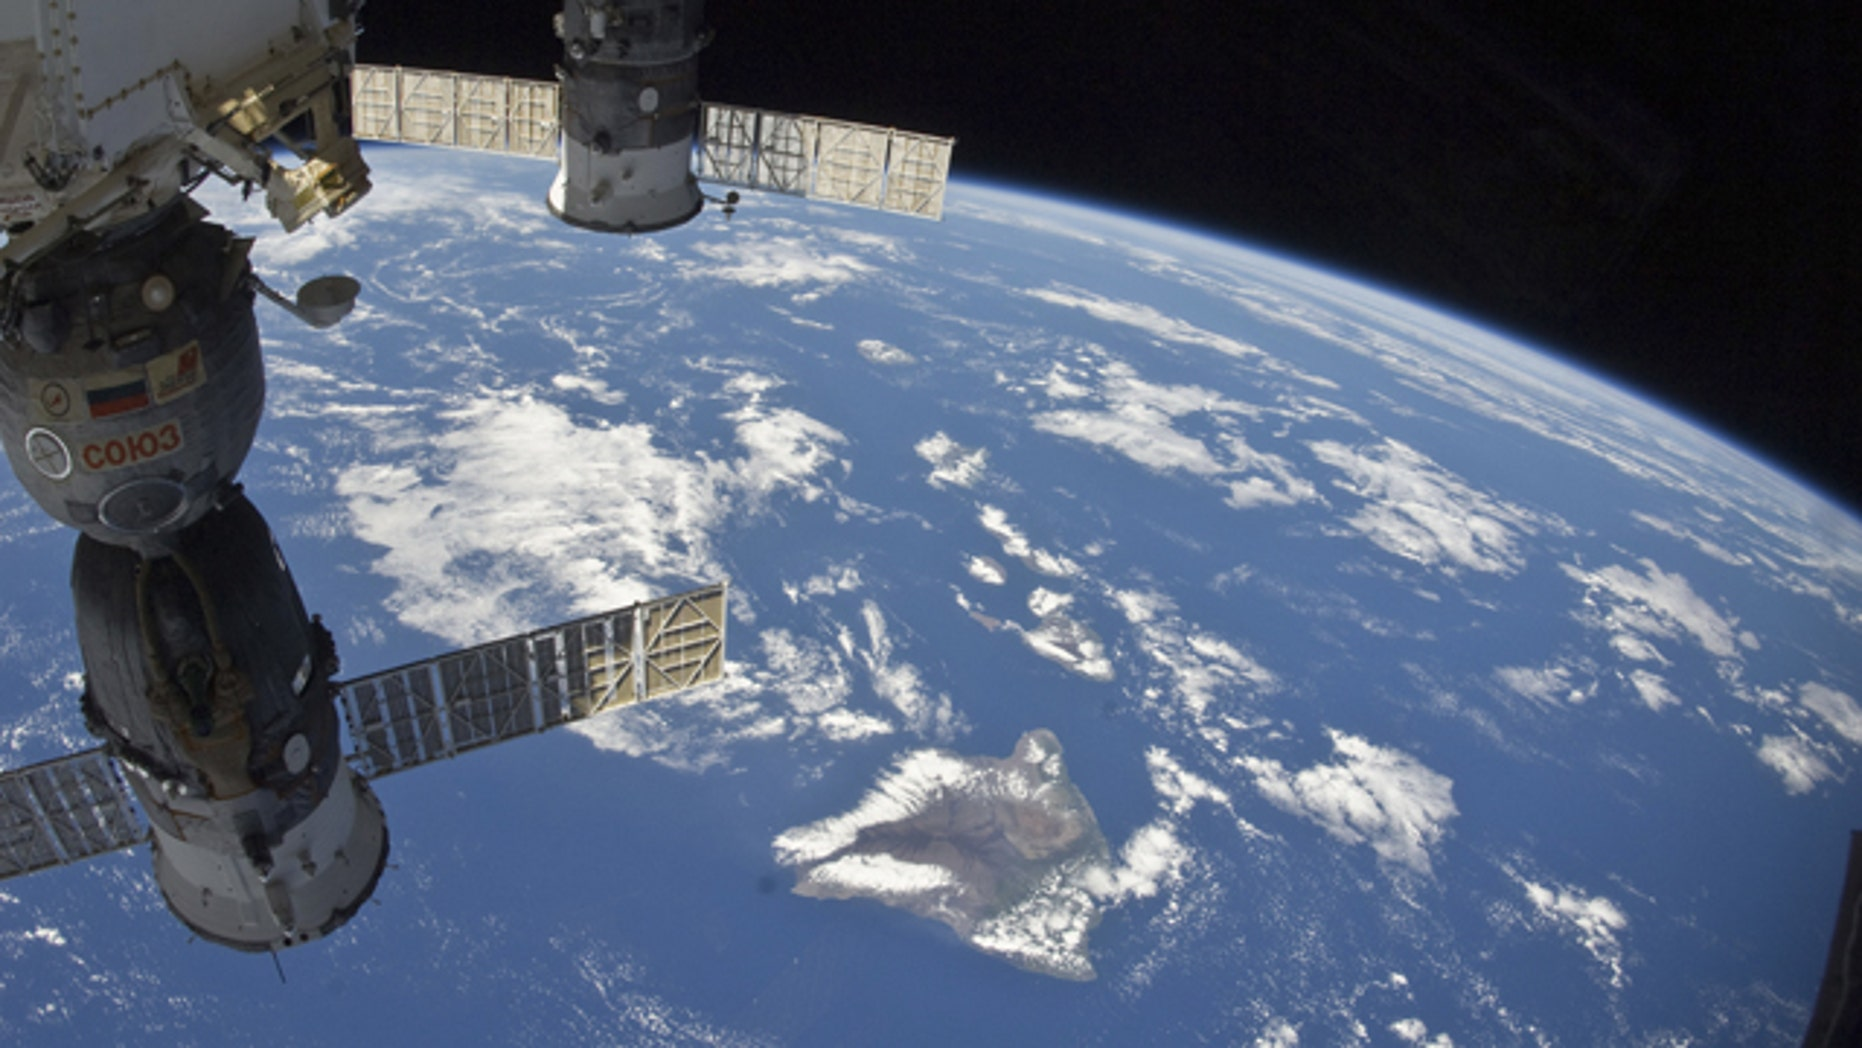 Oct. 7: Astronauts aboard the International Space Station captured this image as the station passed over the Pacific Ocean in this image provided by NASA.